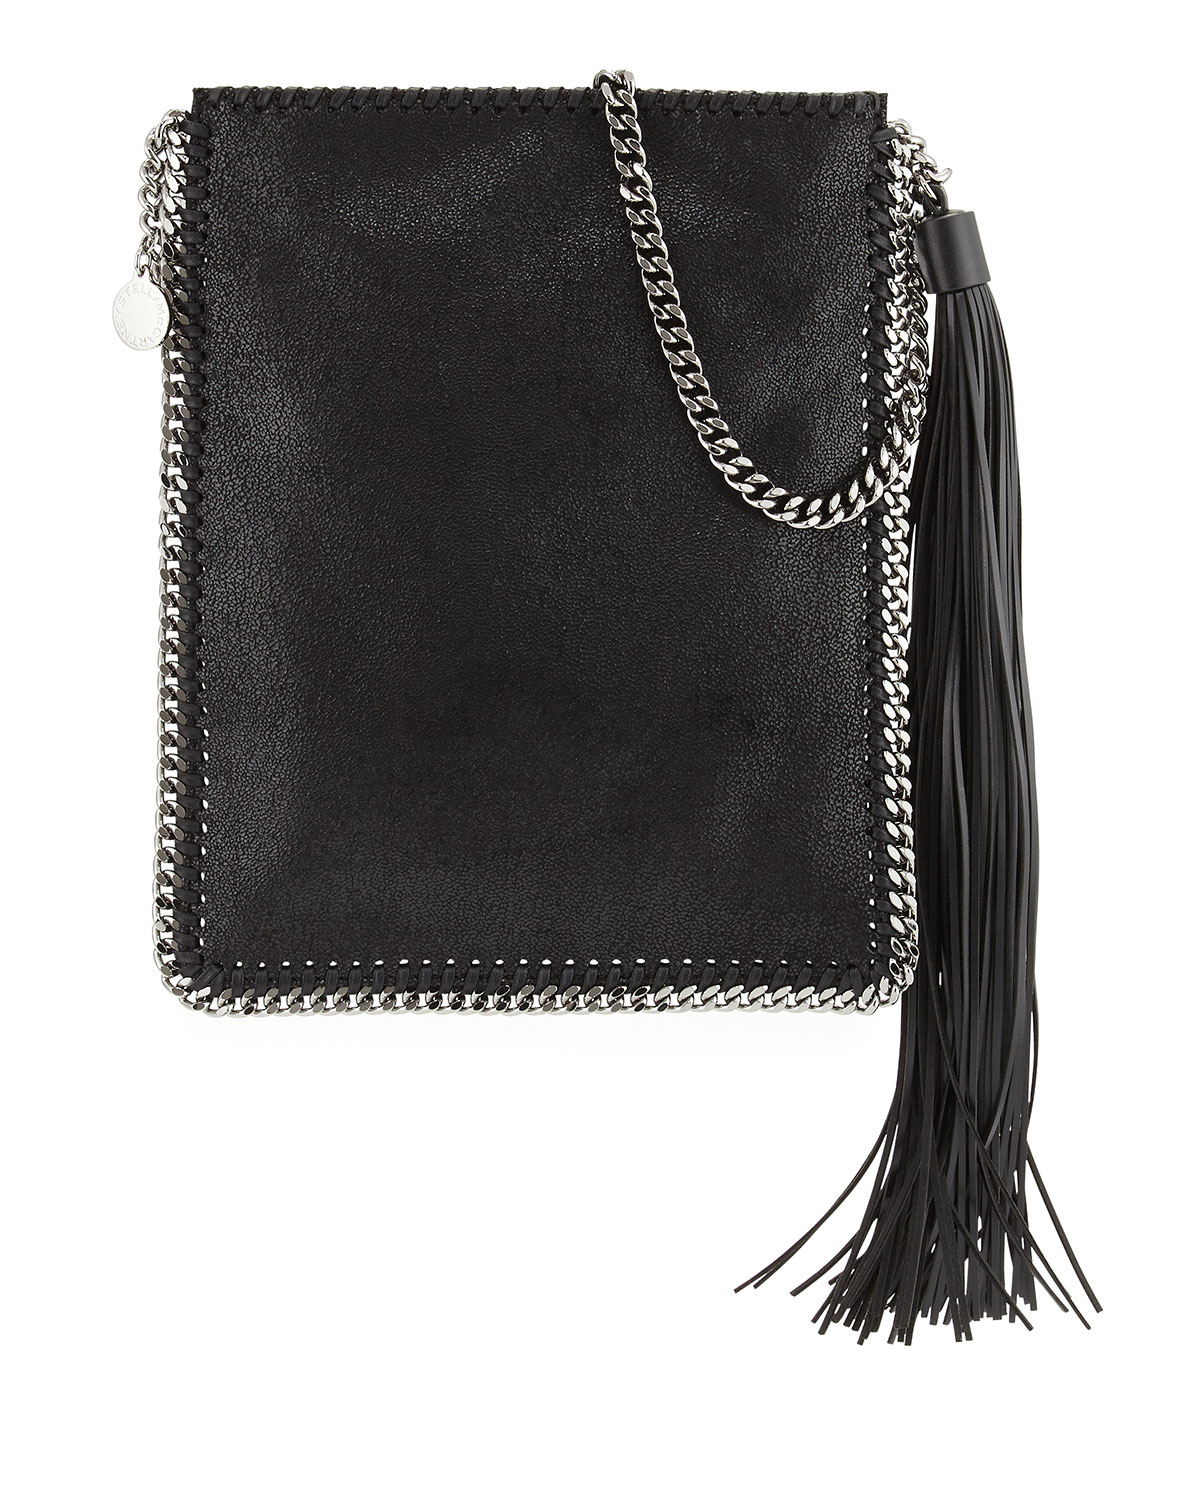 38a1956aaa Gallery. Previously sold at  Neiman Marcus · Women s Fringed Bags Women s Stella  Mccartney Falabella ...